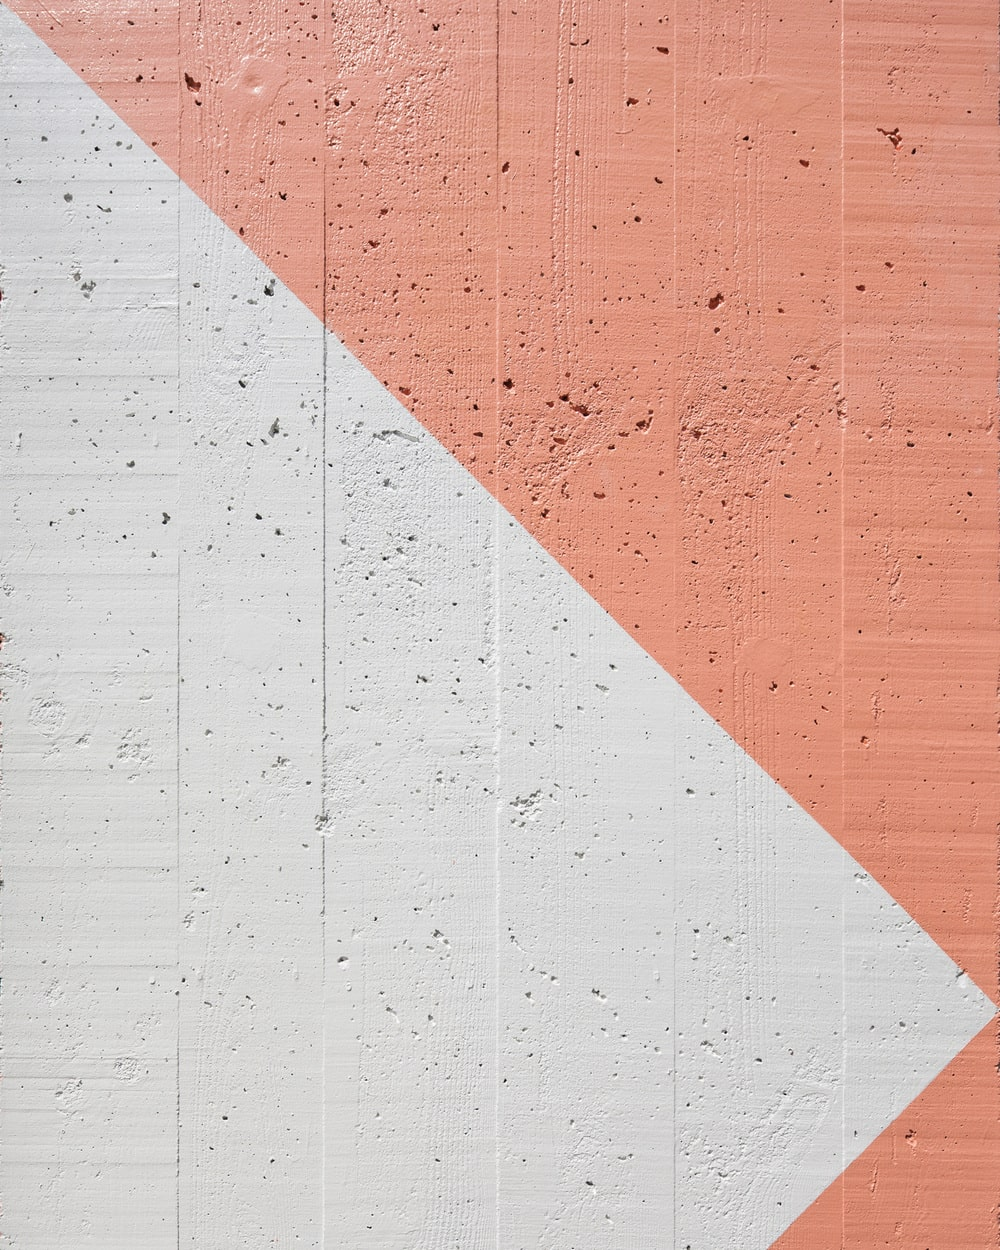 This is a close look at the colorful and patterned concrete chimney structure on the side.